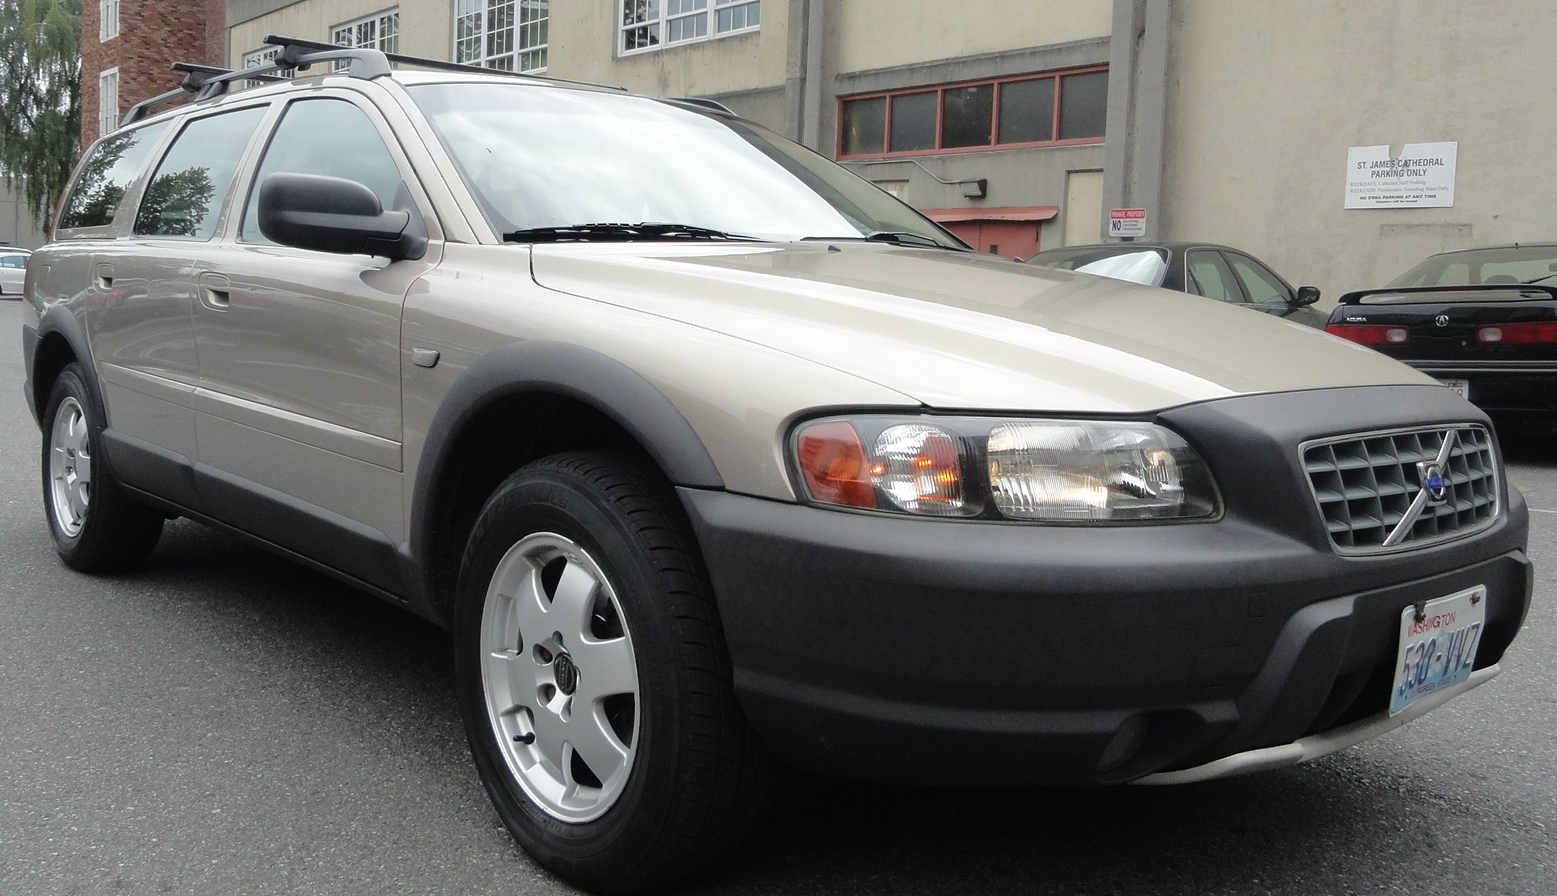 2001 Volvo V70 Consumer Reviews | Cars.com